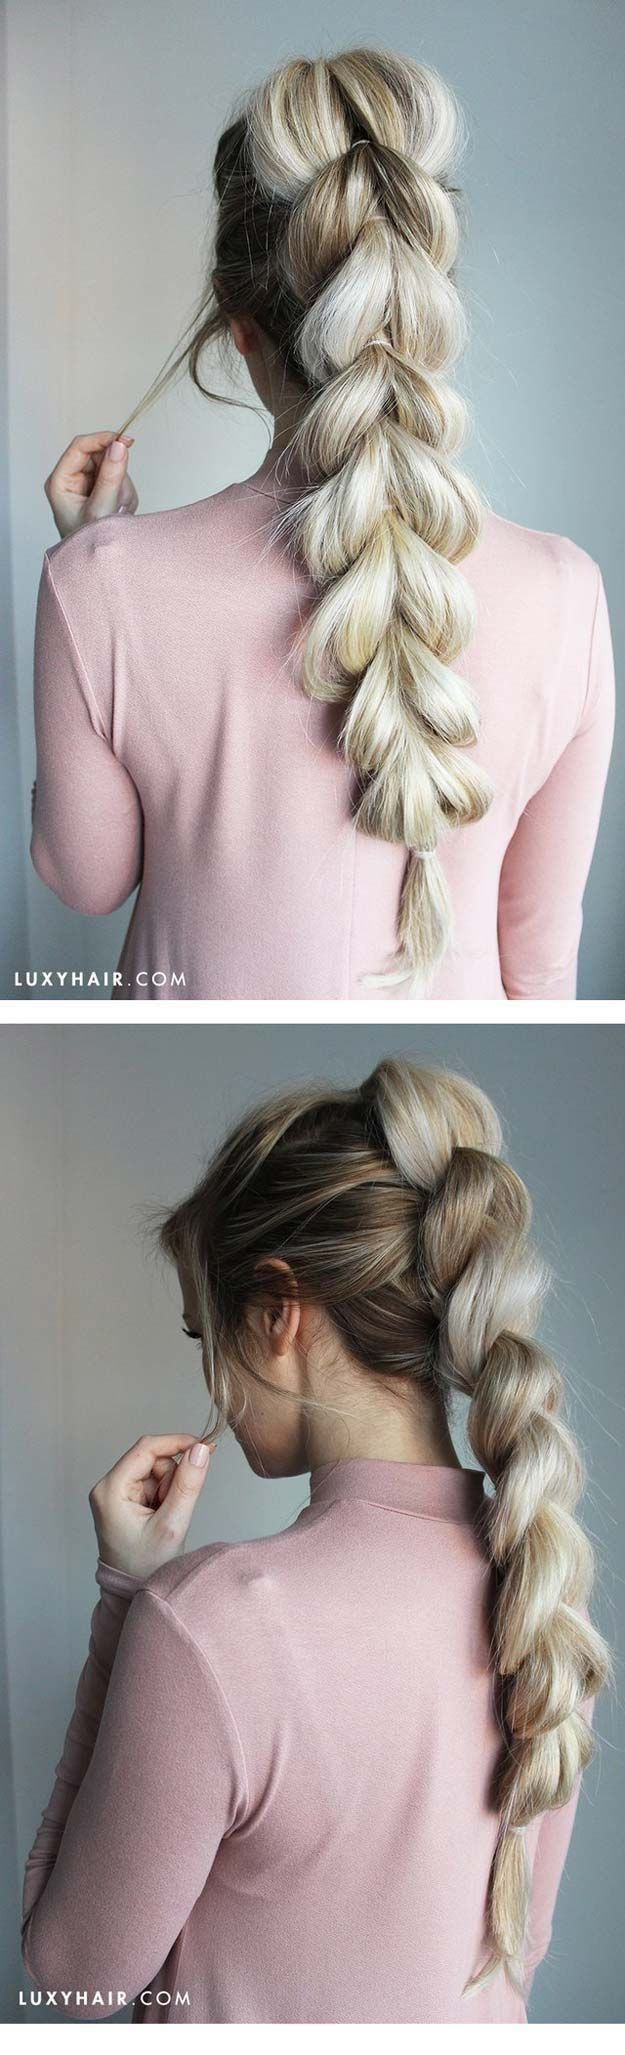 Tips To Instantly Make Your Hair Look Thicker - How To: Pull-Through Braid Easy ...